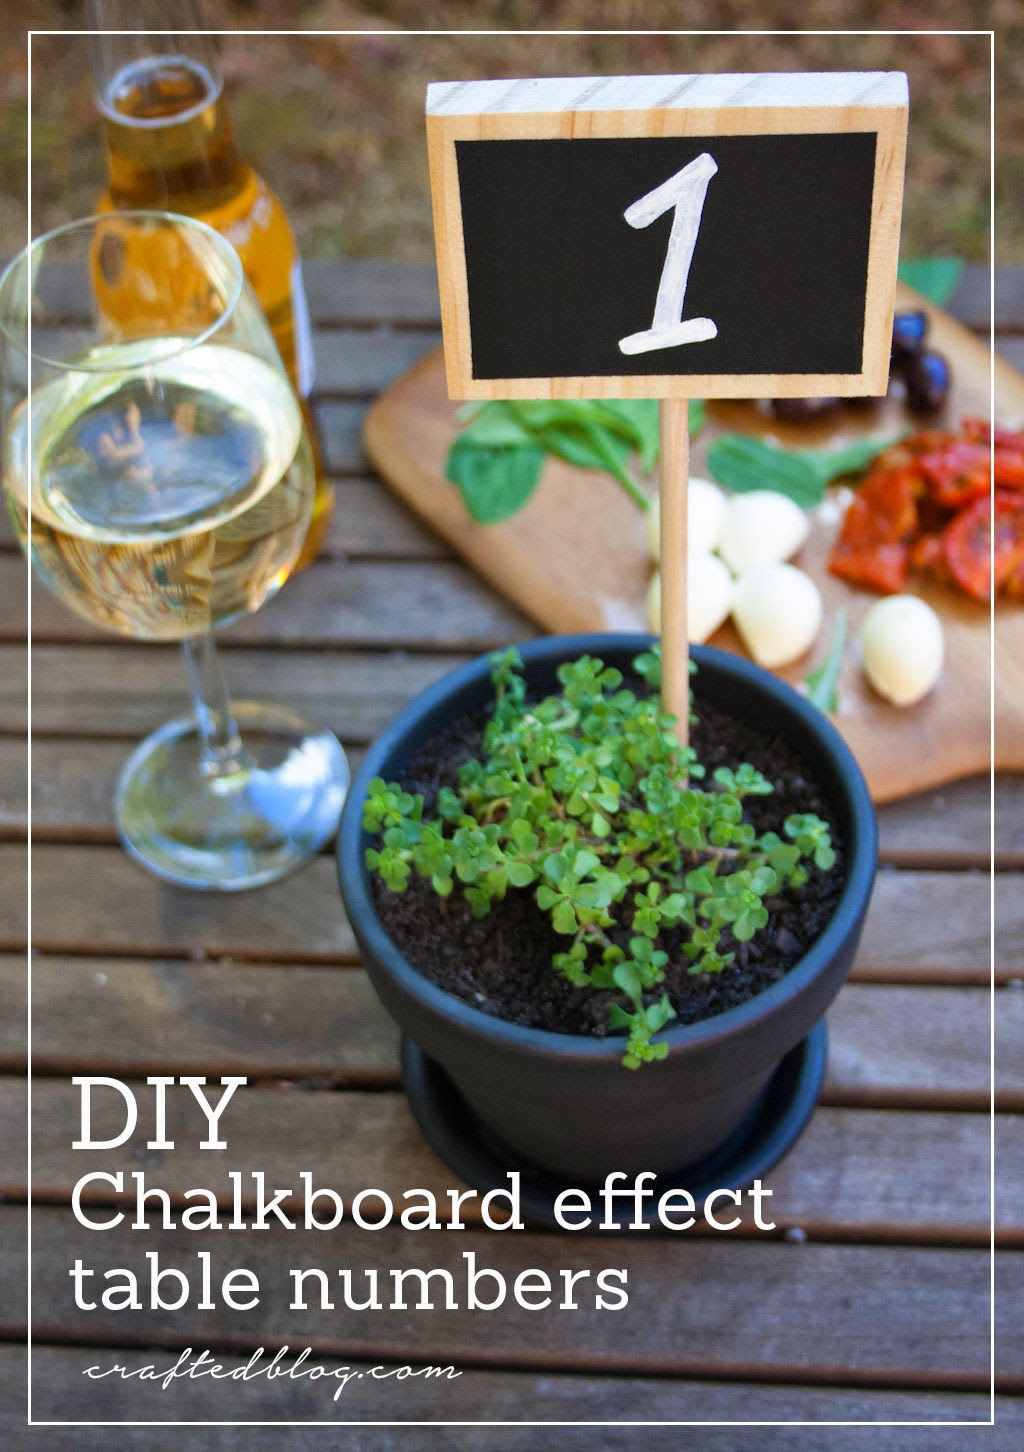 DIY Chalkboard Effect Table Numbers